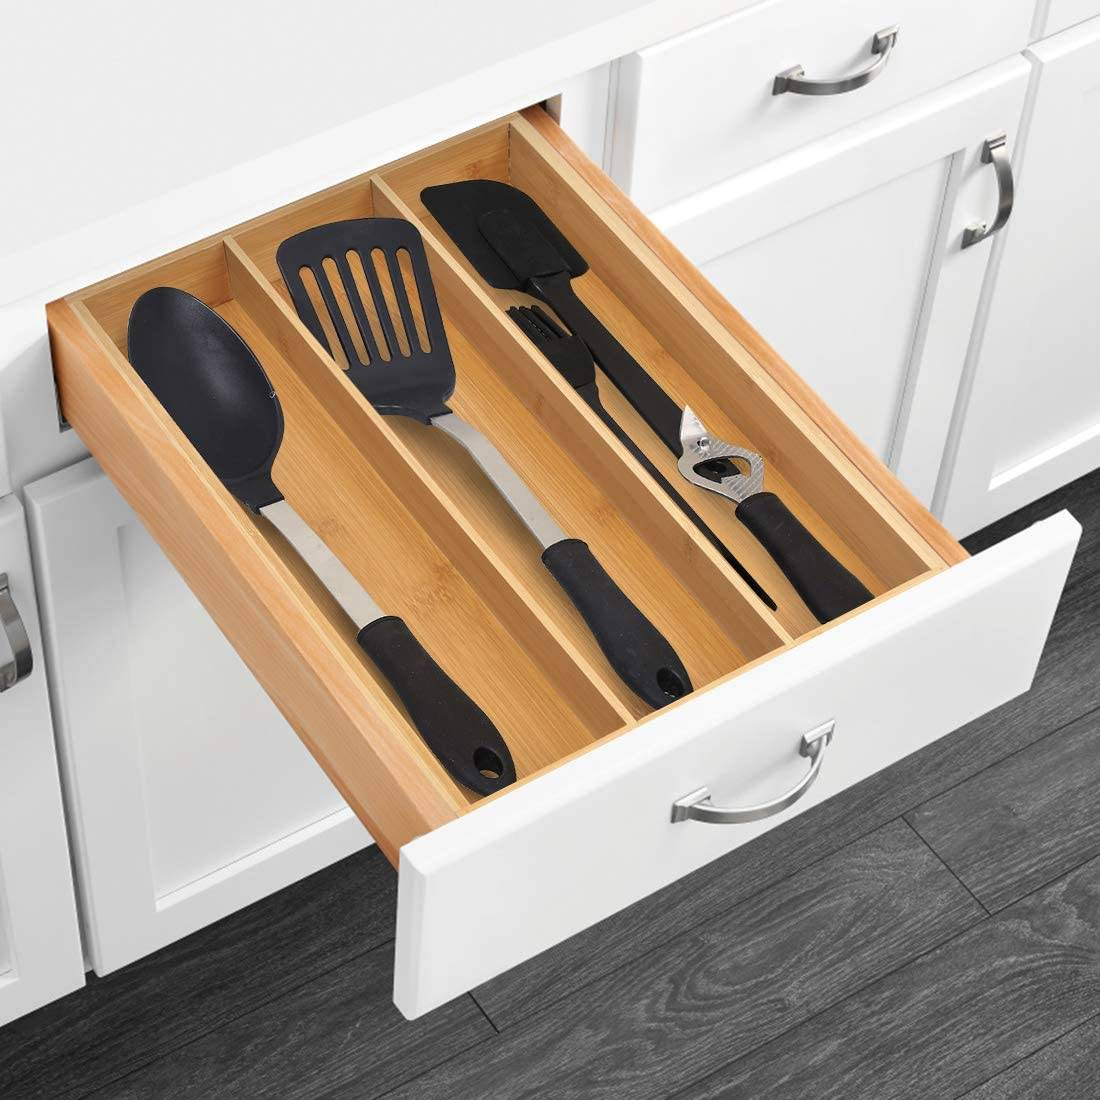 Fixed Competitive Price Kitchen Utensils - Factory Selling China Adjustable Bamboo Expandable Utensil/Cutlery Tray Drawer Organizer – Bridge Style